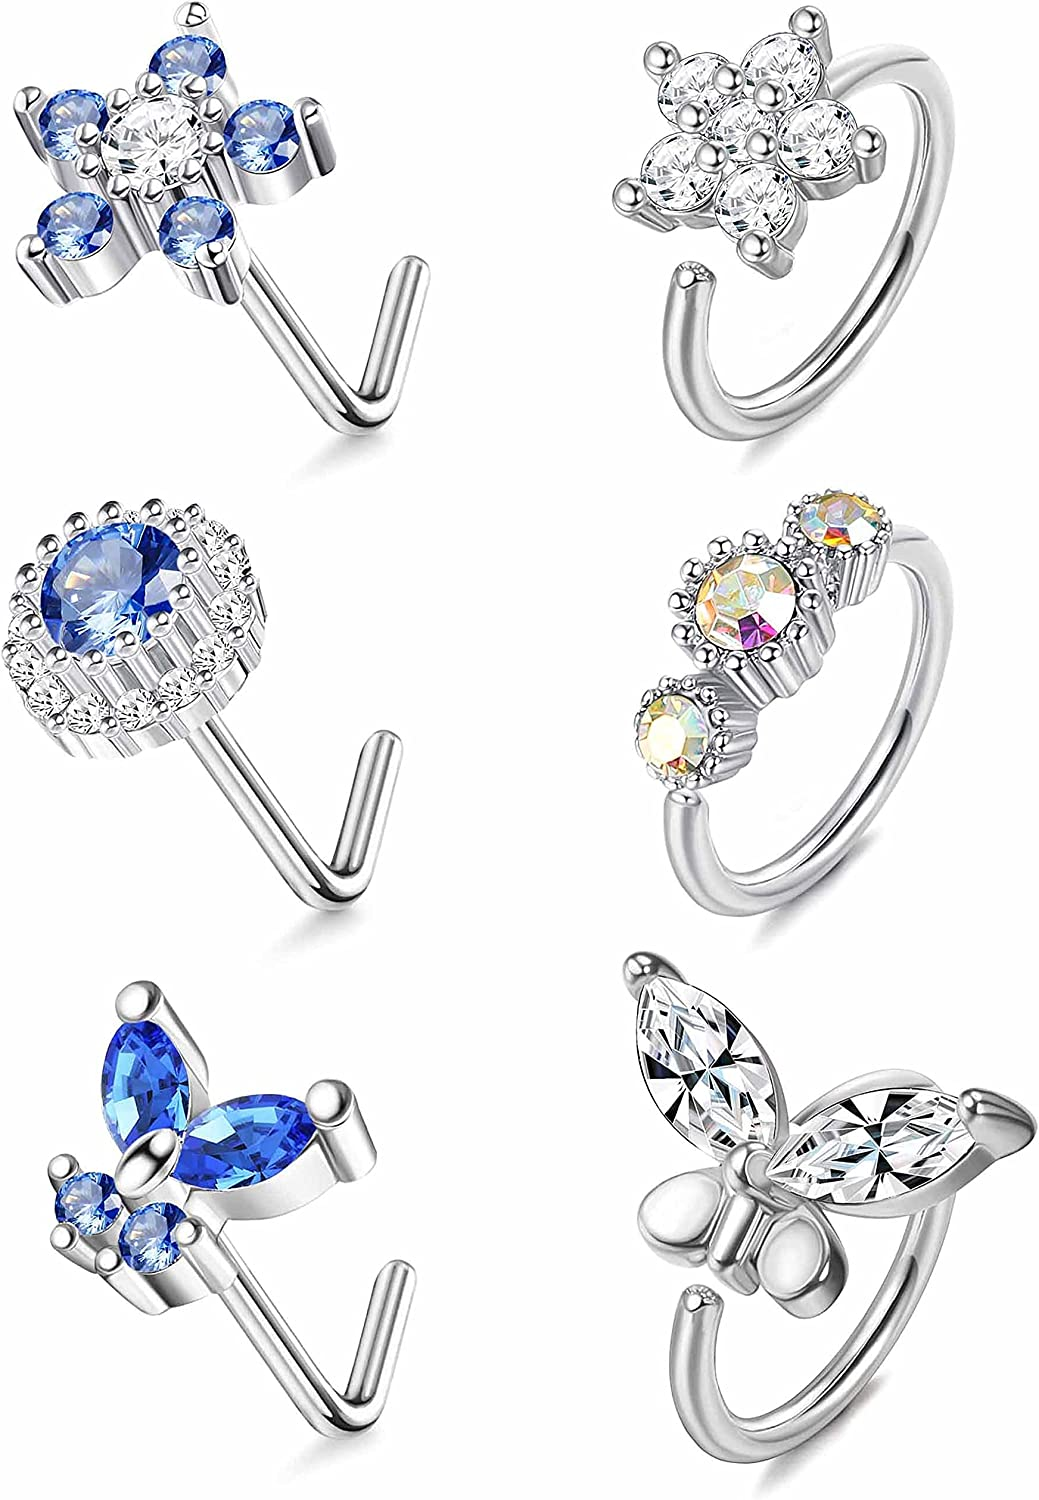 IRONBOX 6Pcs 20G Stainless Steel Nose Rings Hoop for Women Men Flower L Shaped Nose Rings Butterfly Nose Stud CZ Nose Piercing Jewelry